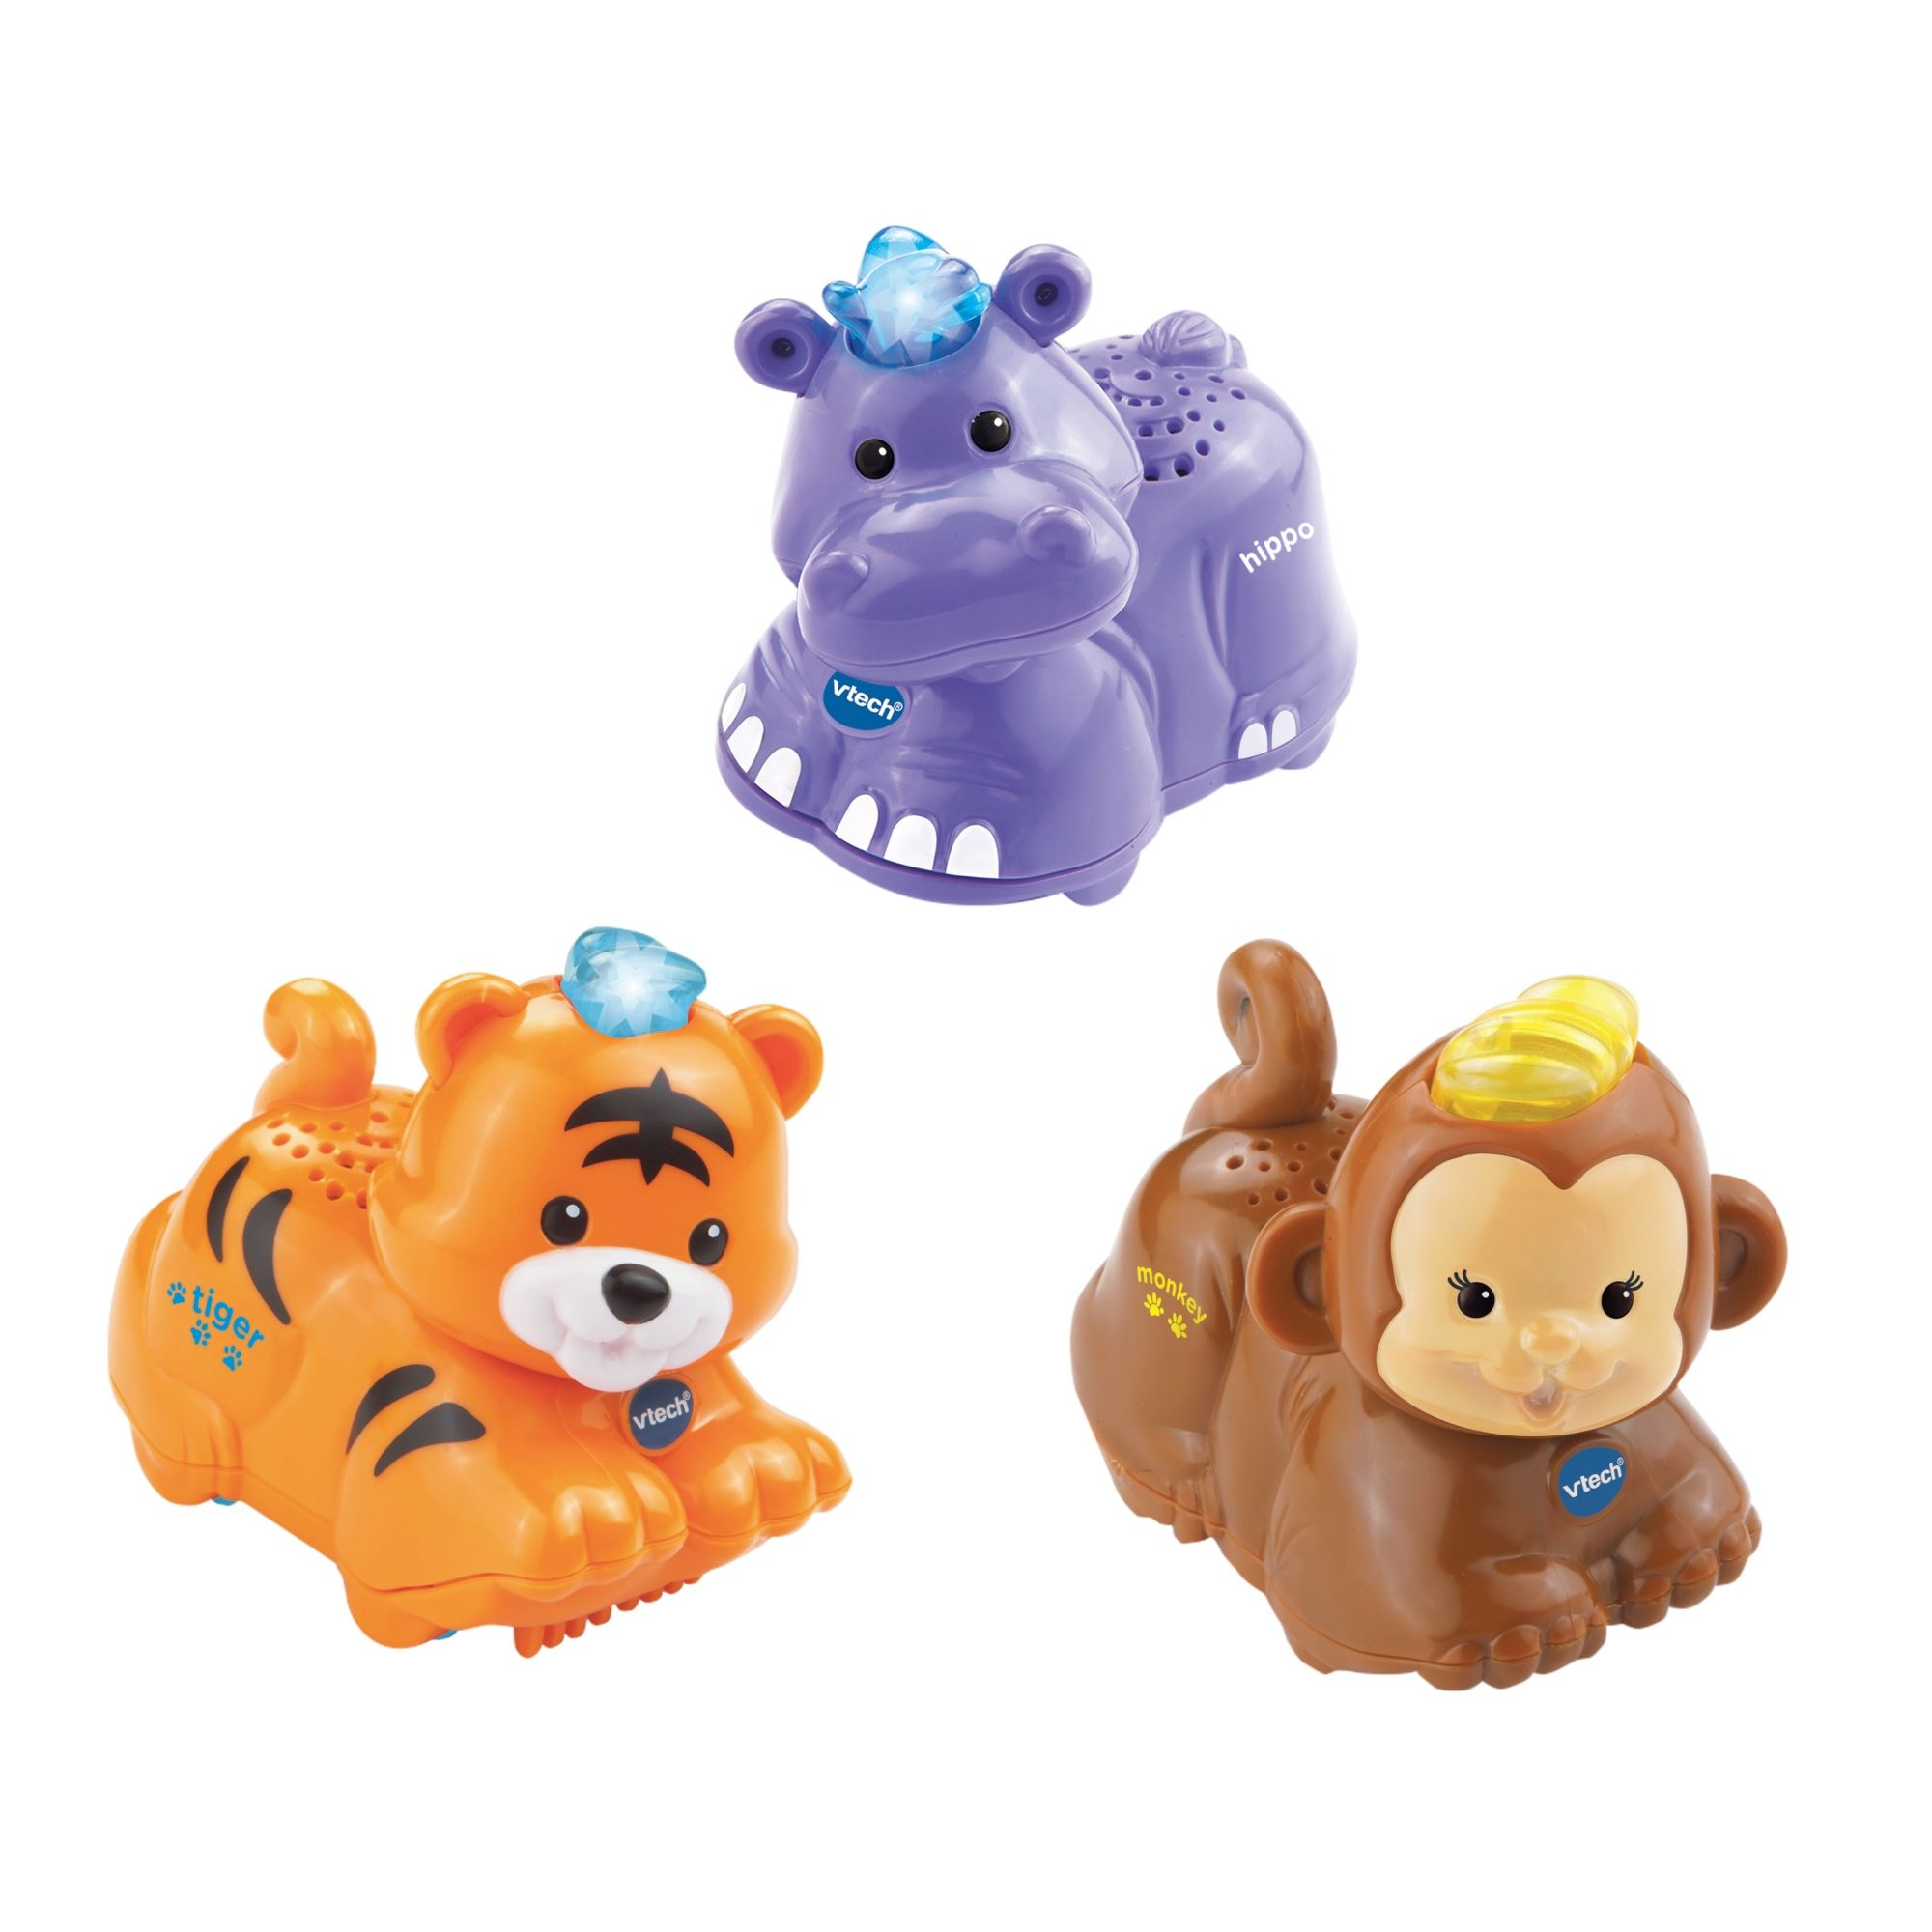 VTech Toot Toot Animals Tiger Hippo Monkey